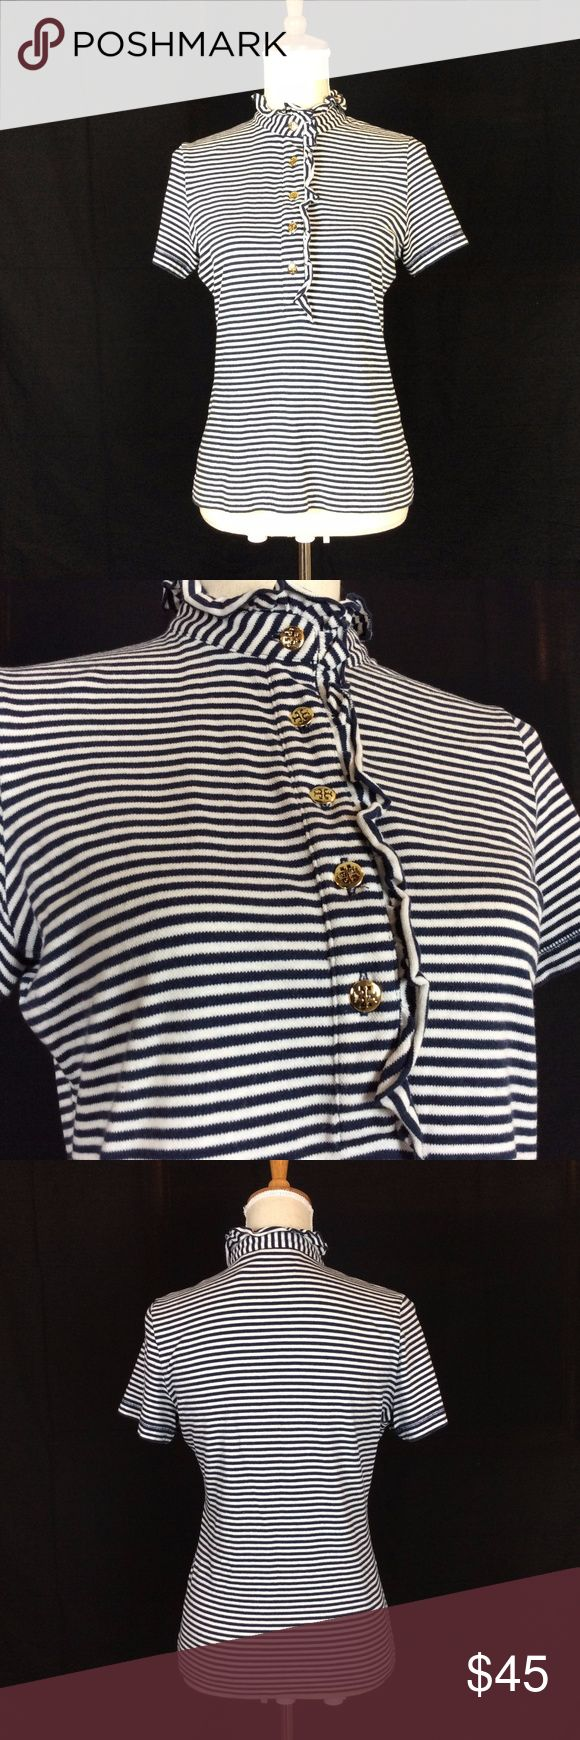 Tory Burch Striped Shirt Tory Burch Classic Striped button up frilly collar shirt.Love the navy and white stripes. GUC No tears, piling, all original working buttons! Tory Burch Tops